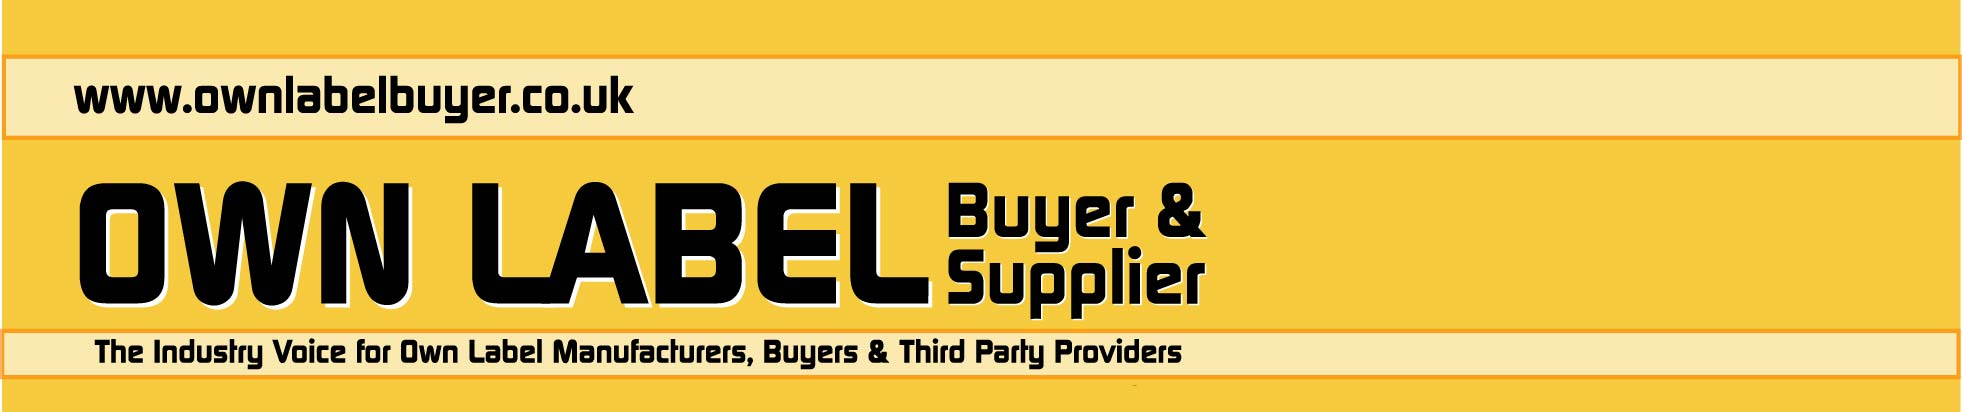 Own Label Buyer and Supplier Magazine